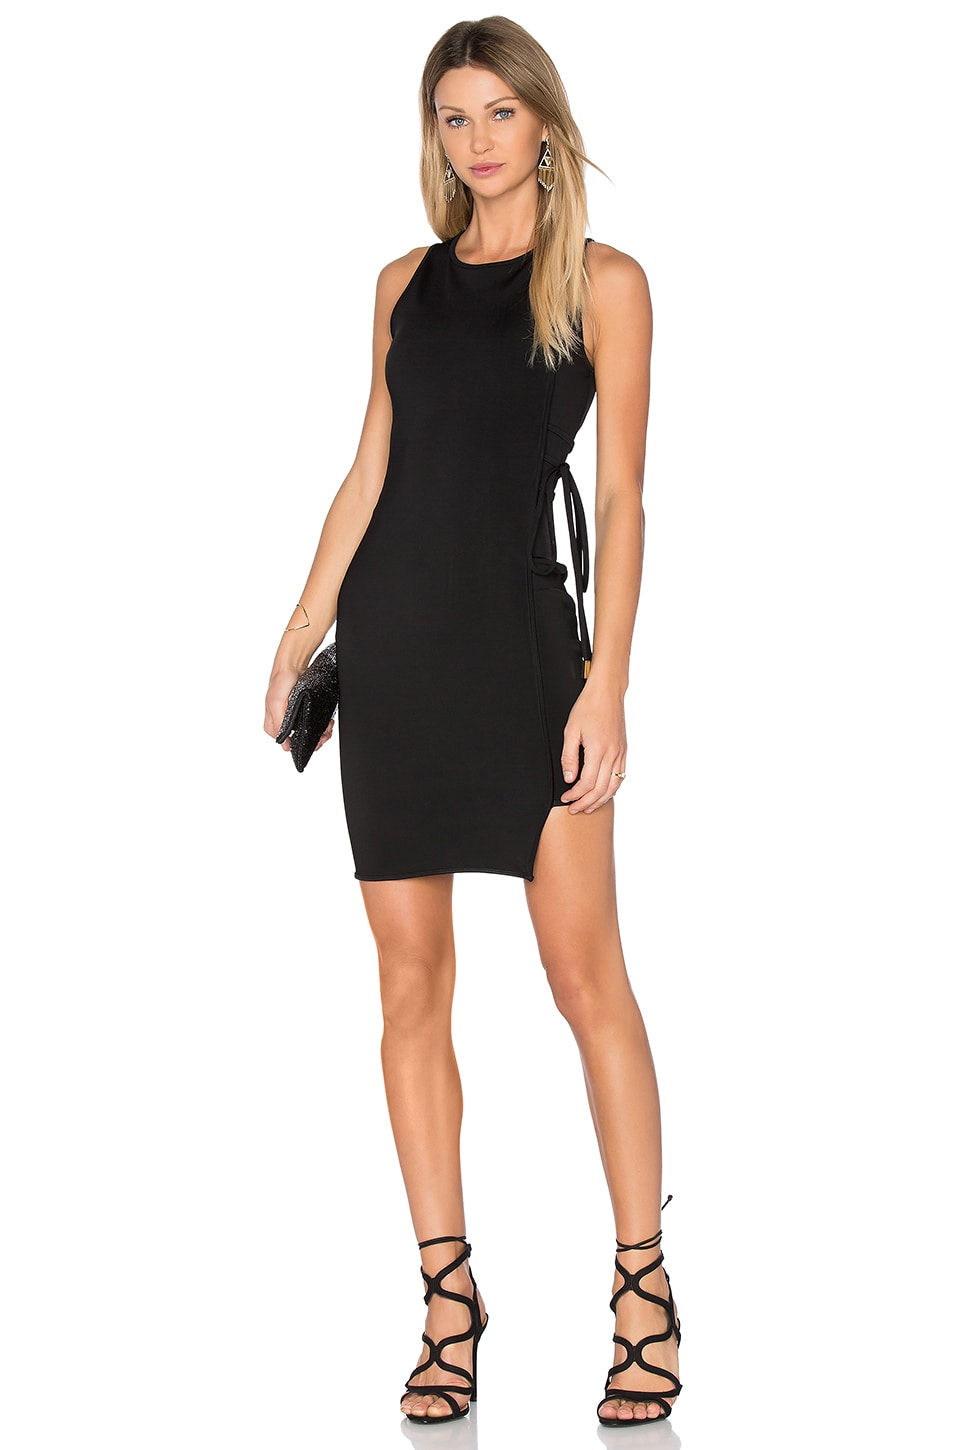 Finders Keepers Nouvel Dress in Black